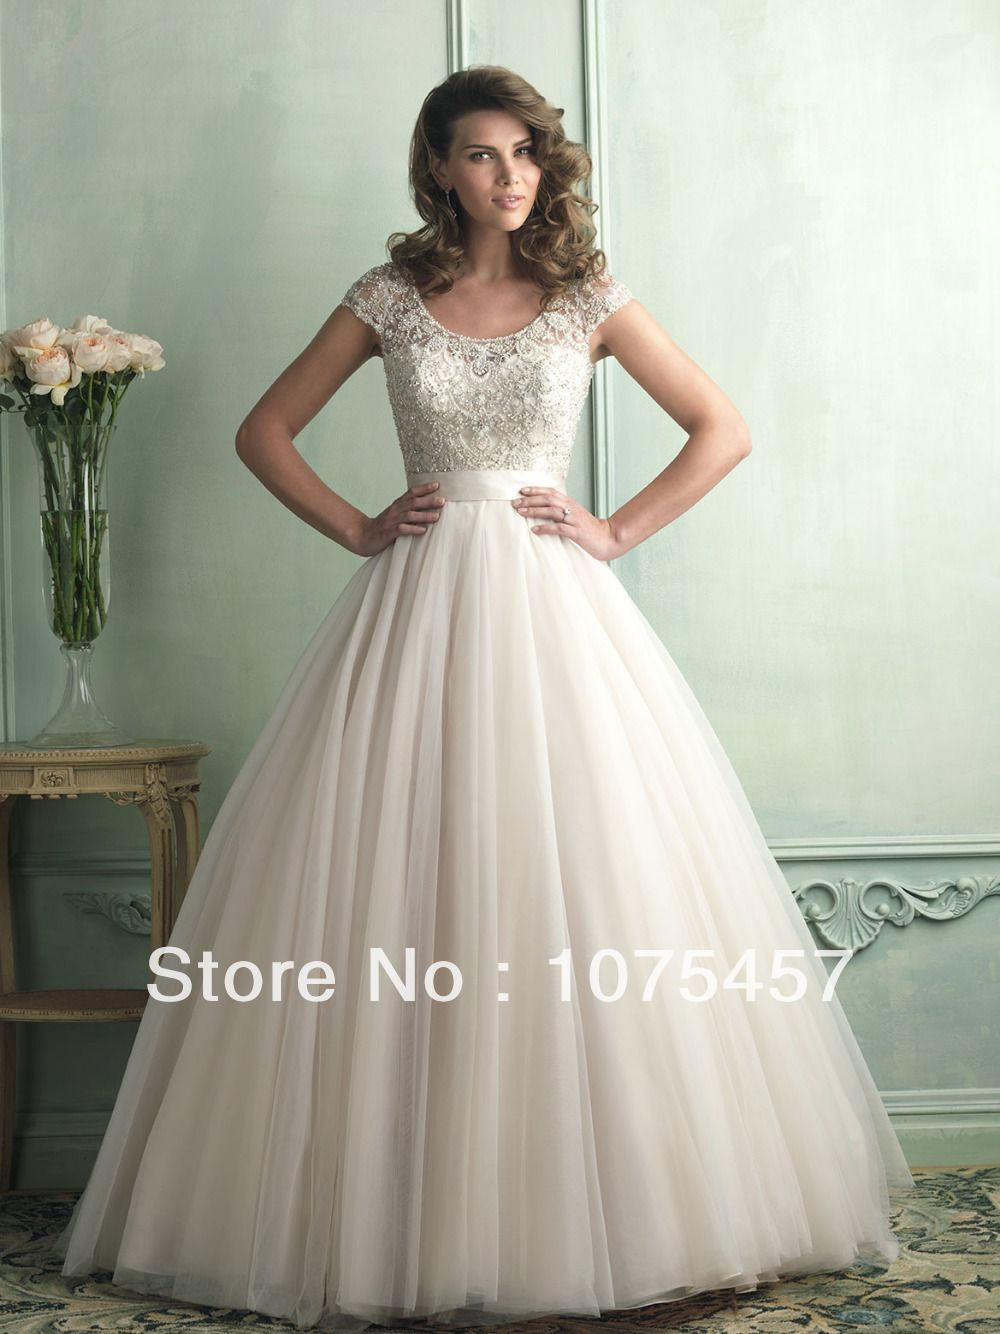 Click to buy ucuc designer wedding dresses with lace high collar short